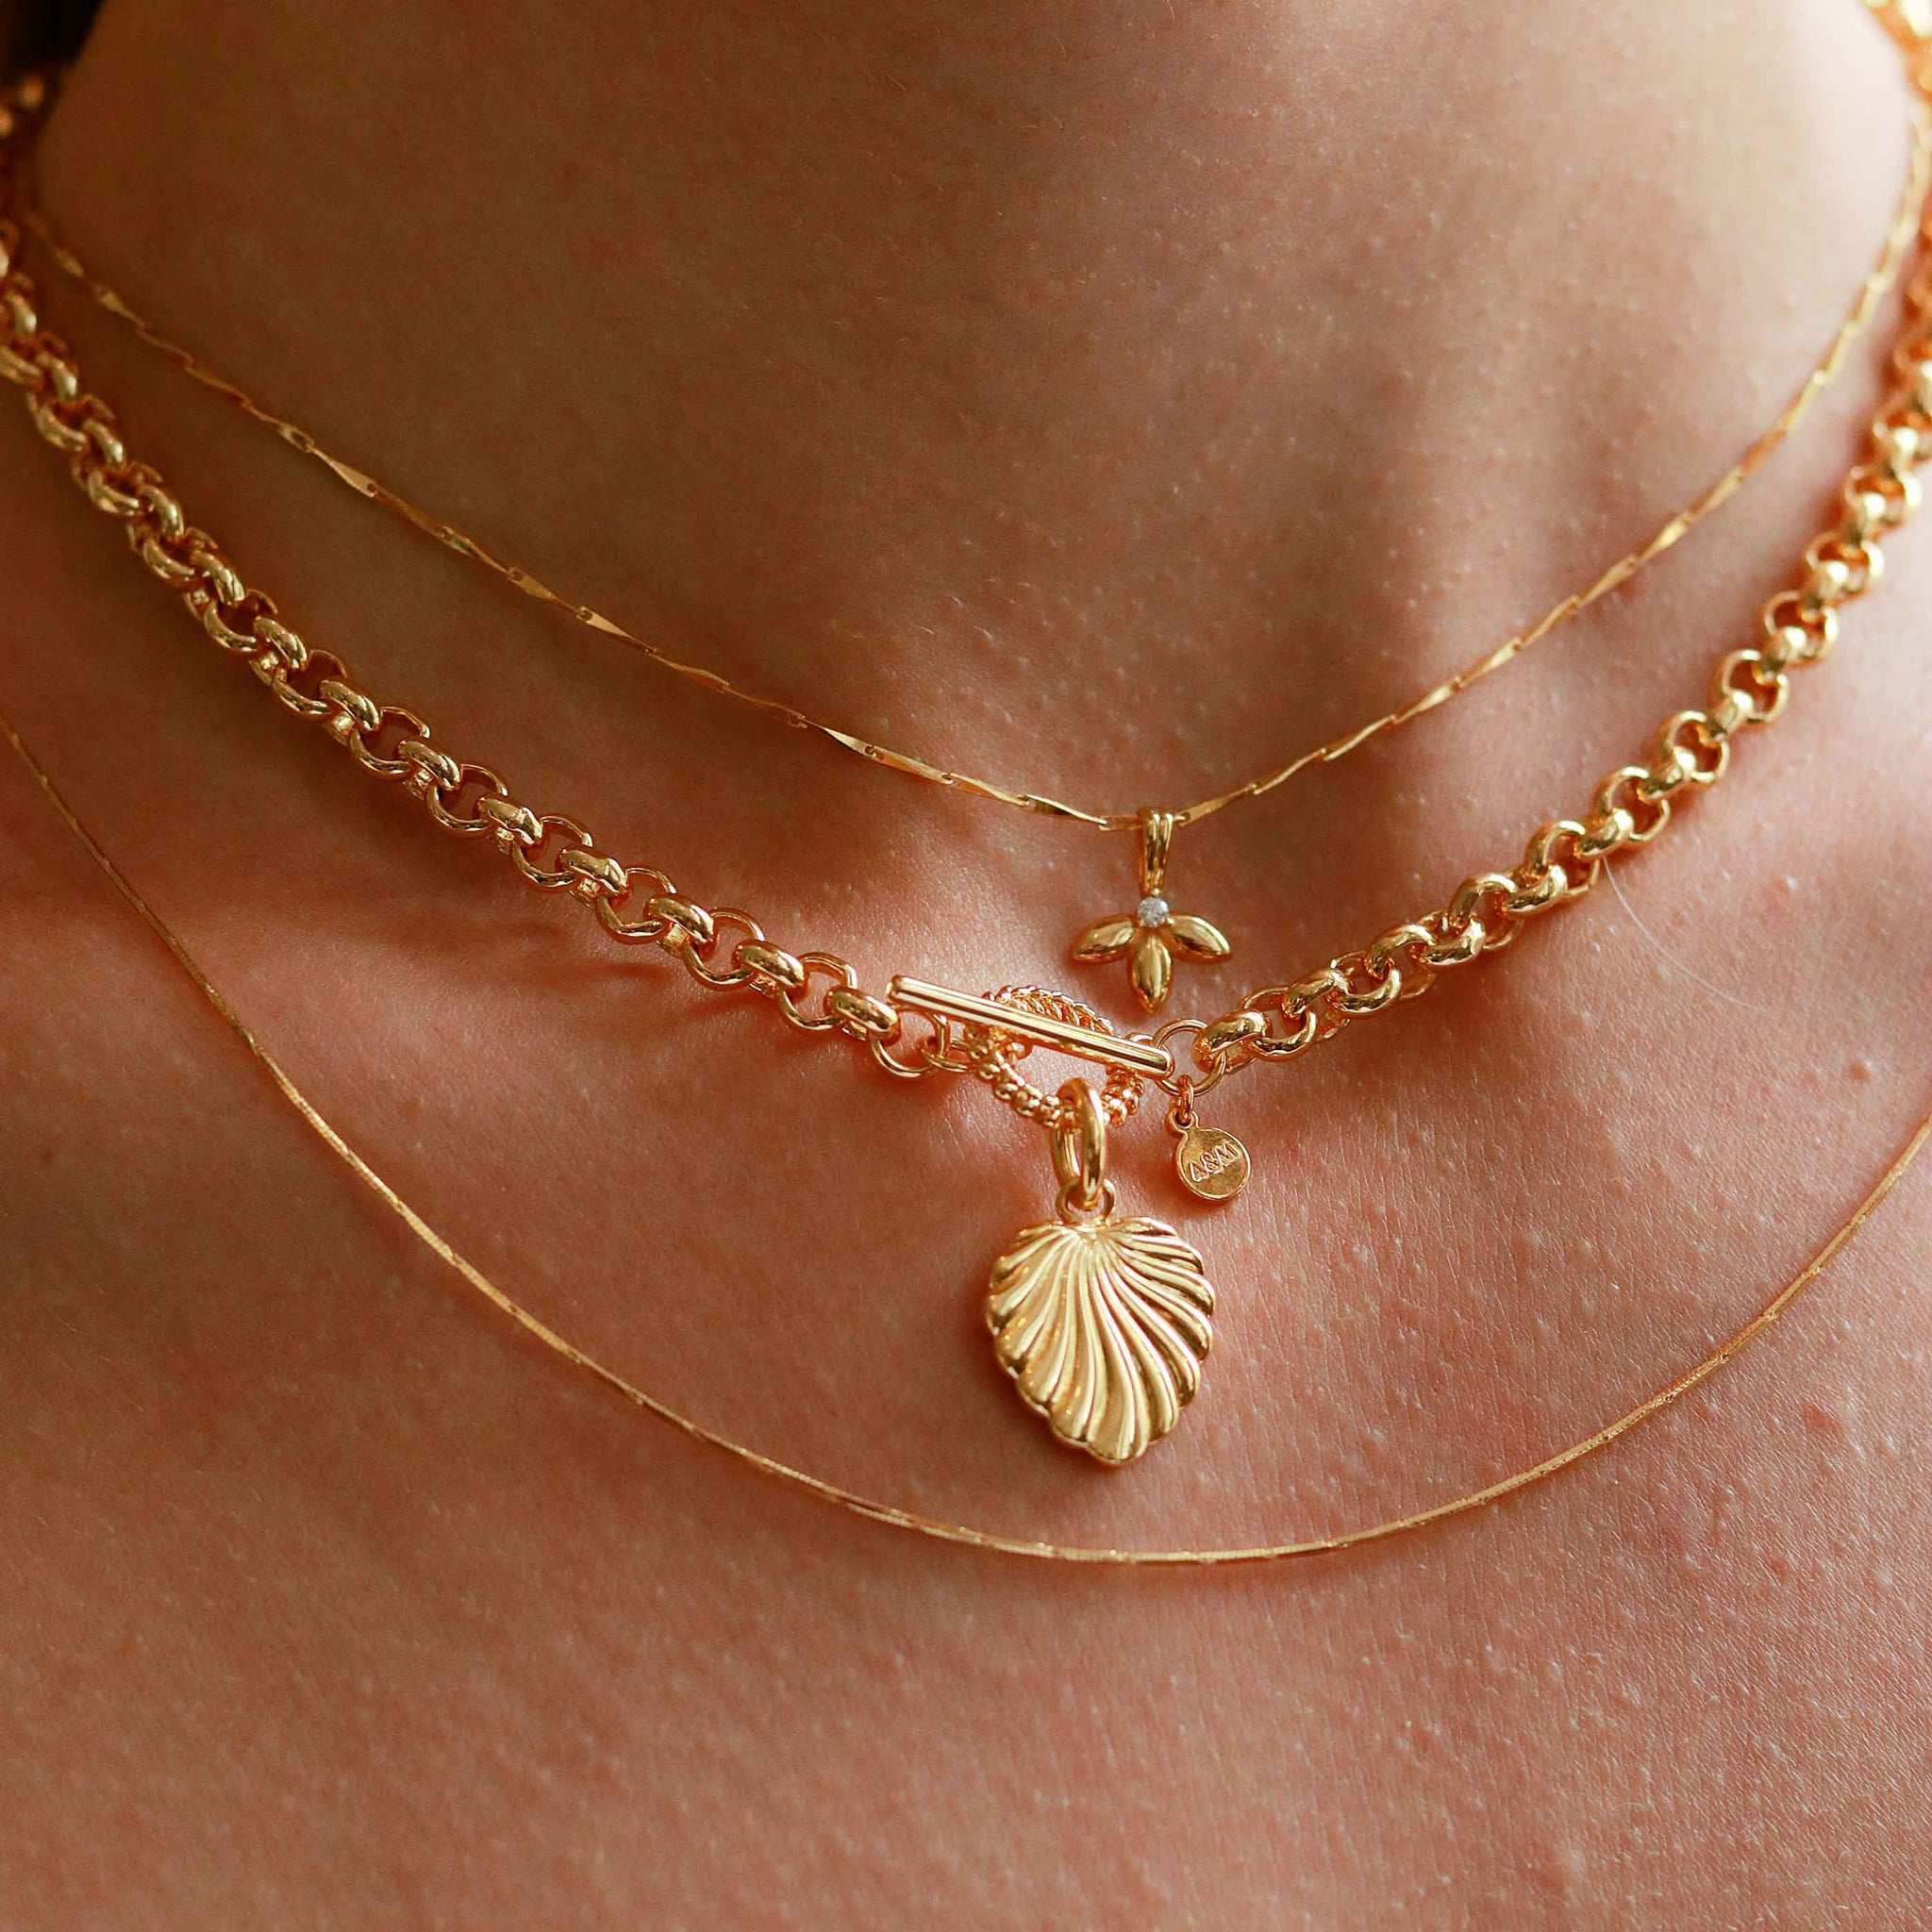 Botanist Pendant Necklace in Gold worn with chunky necklace